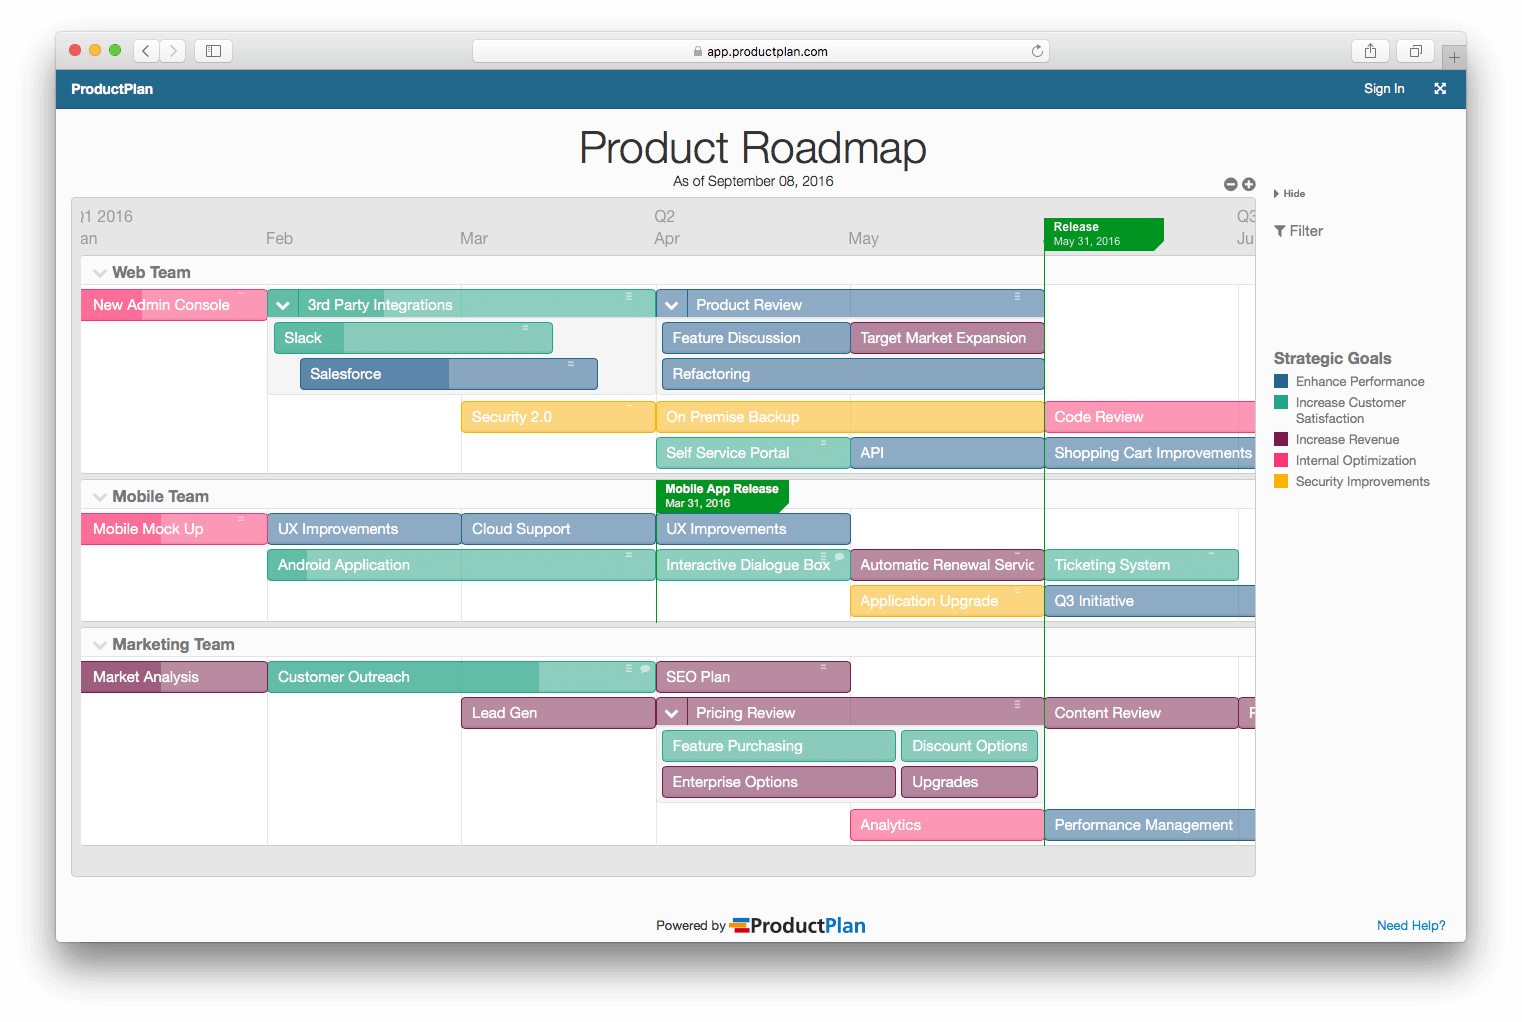 Product Roadmap Template - Company roadmap template